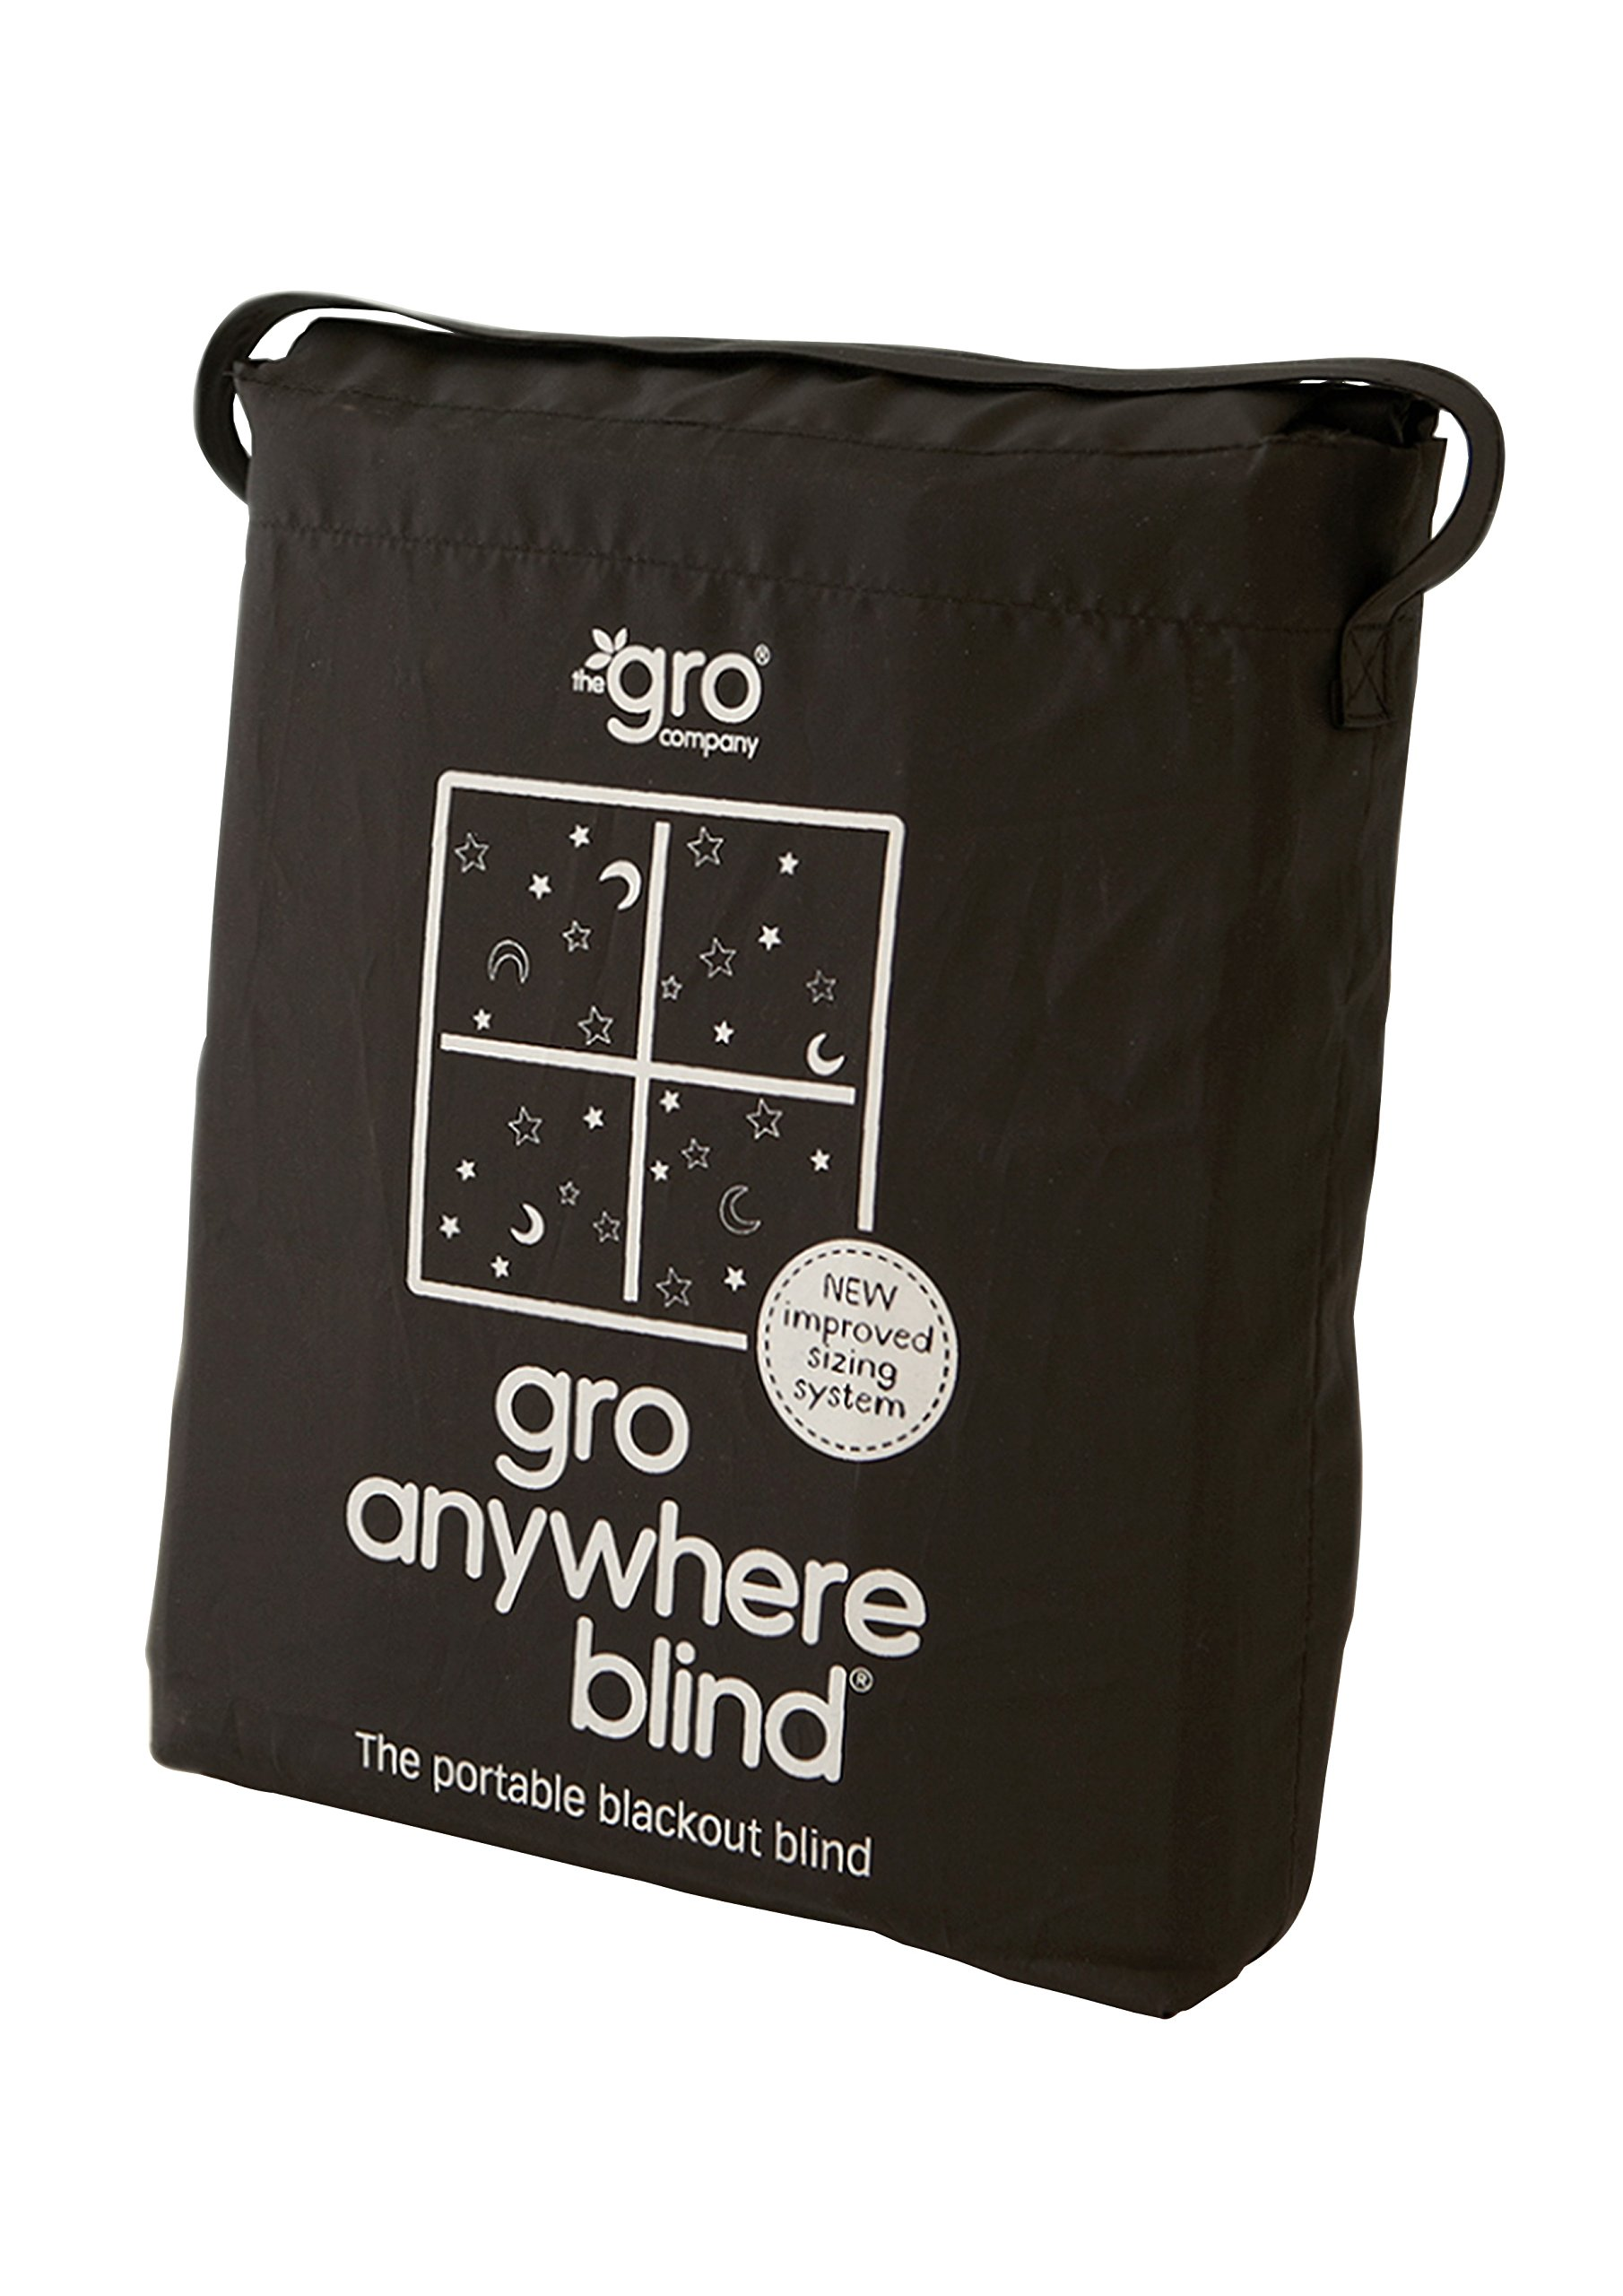 The Gro Company GRO-Anywhere Blind by The Gro Company